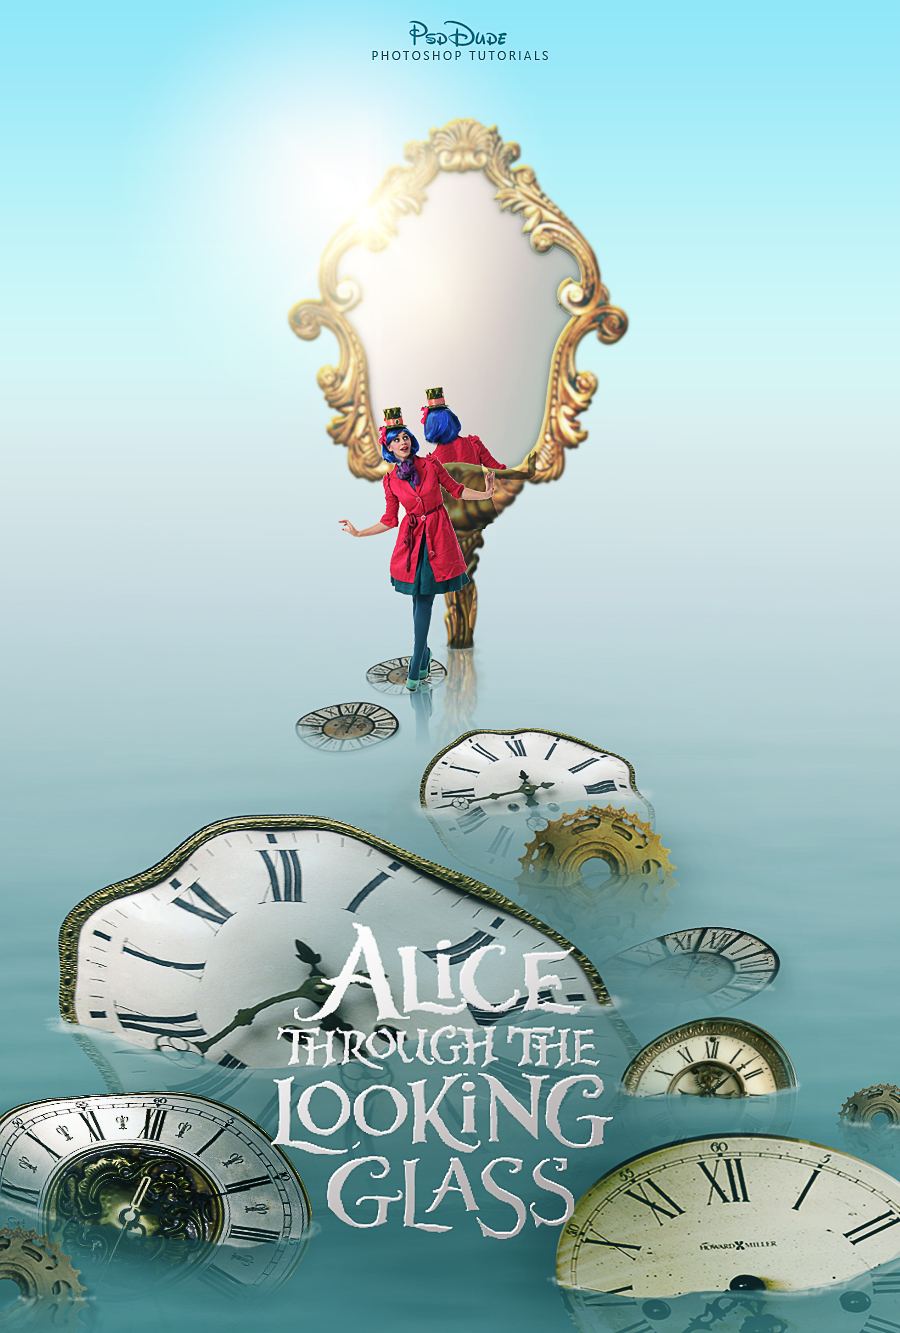 Alice Through The Looking Glass Photoshop Tutorial